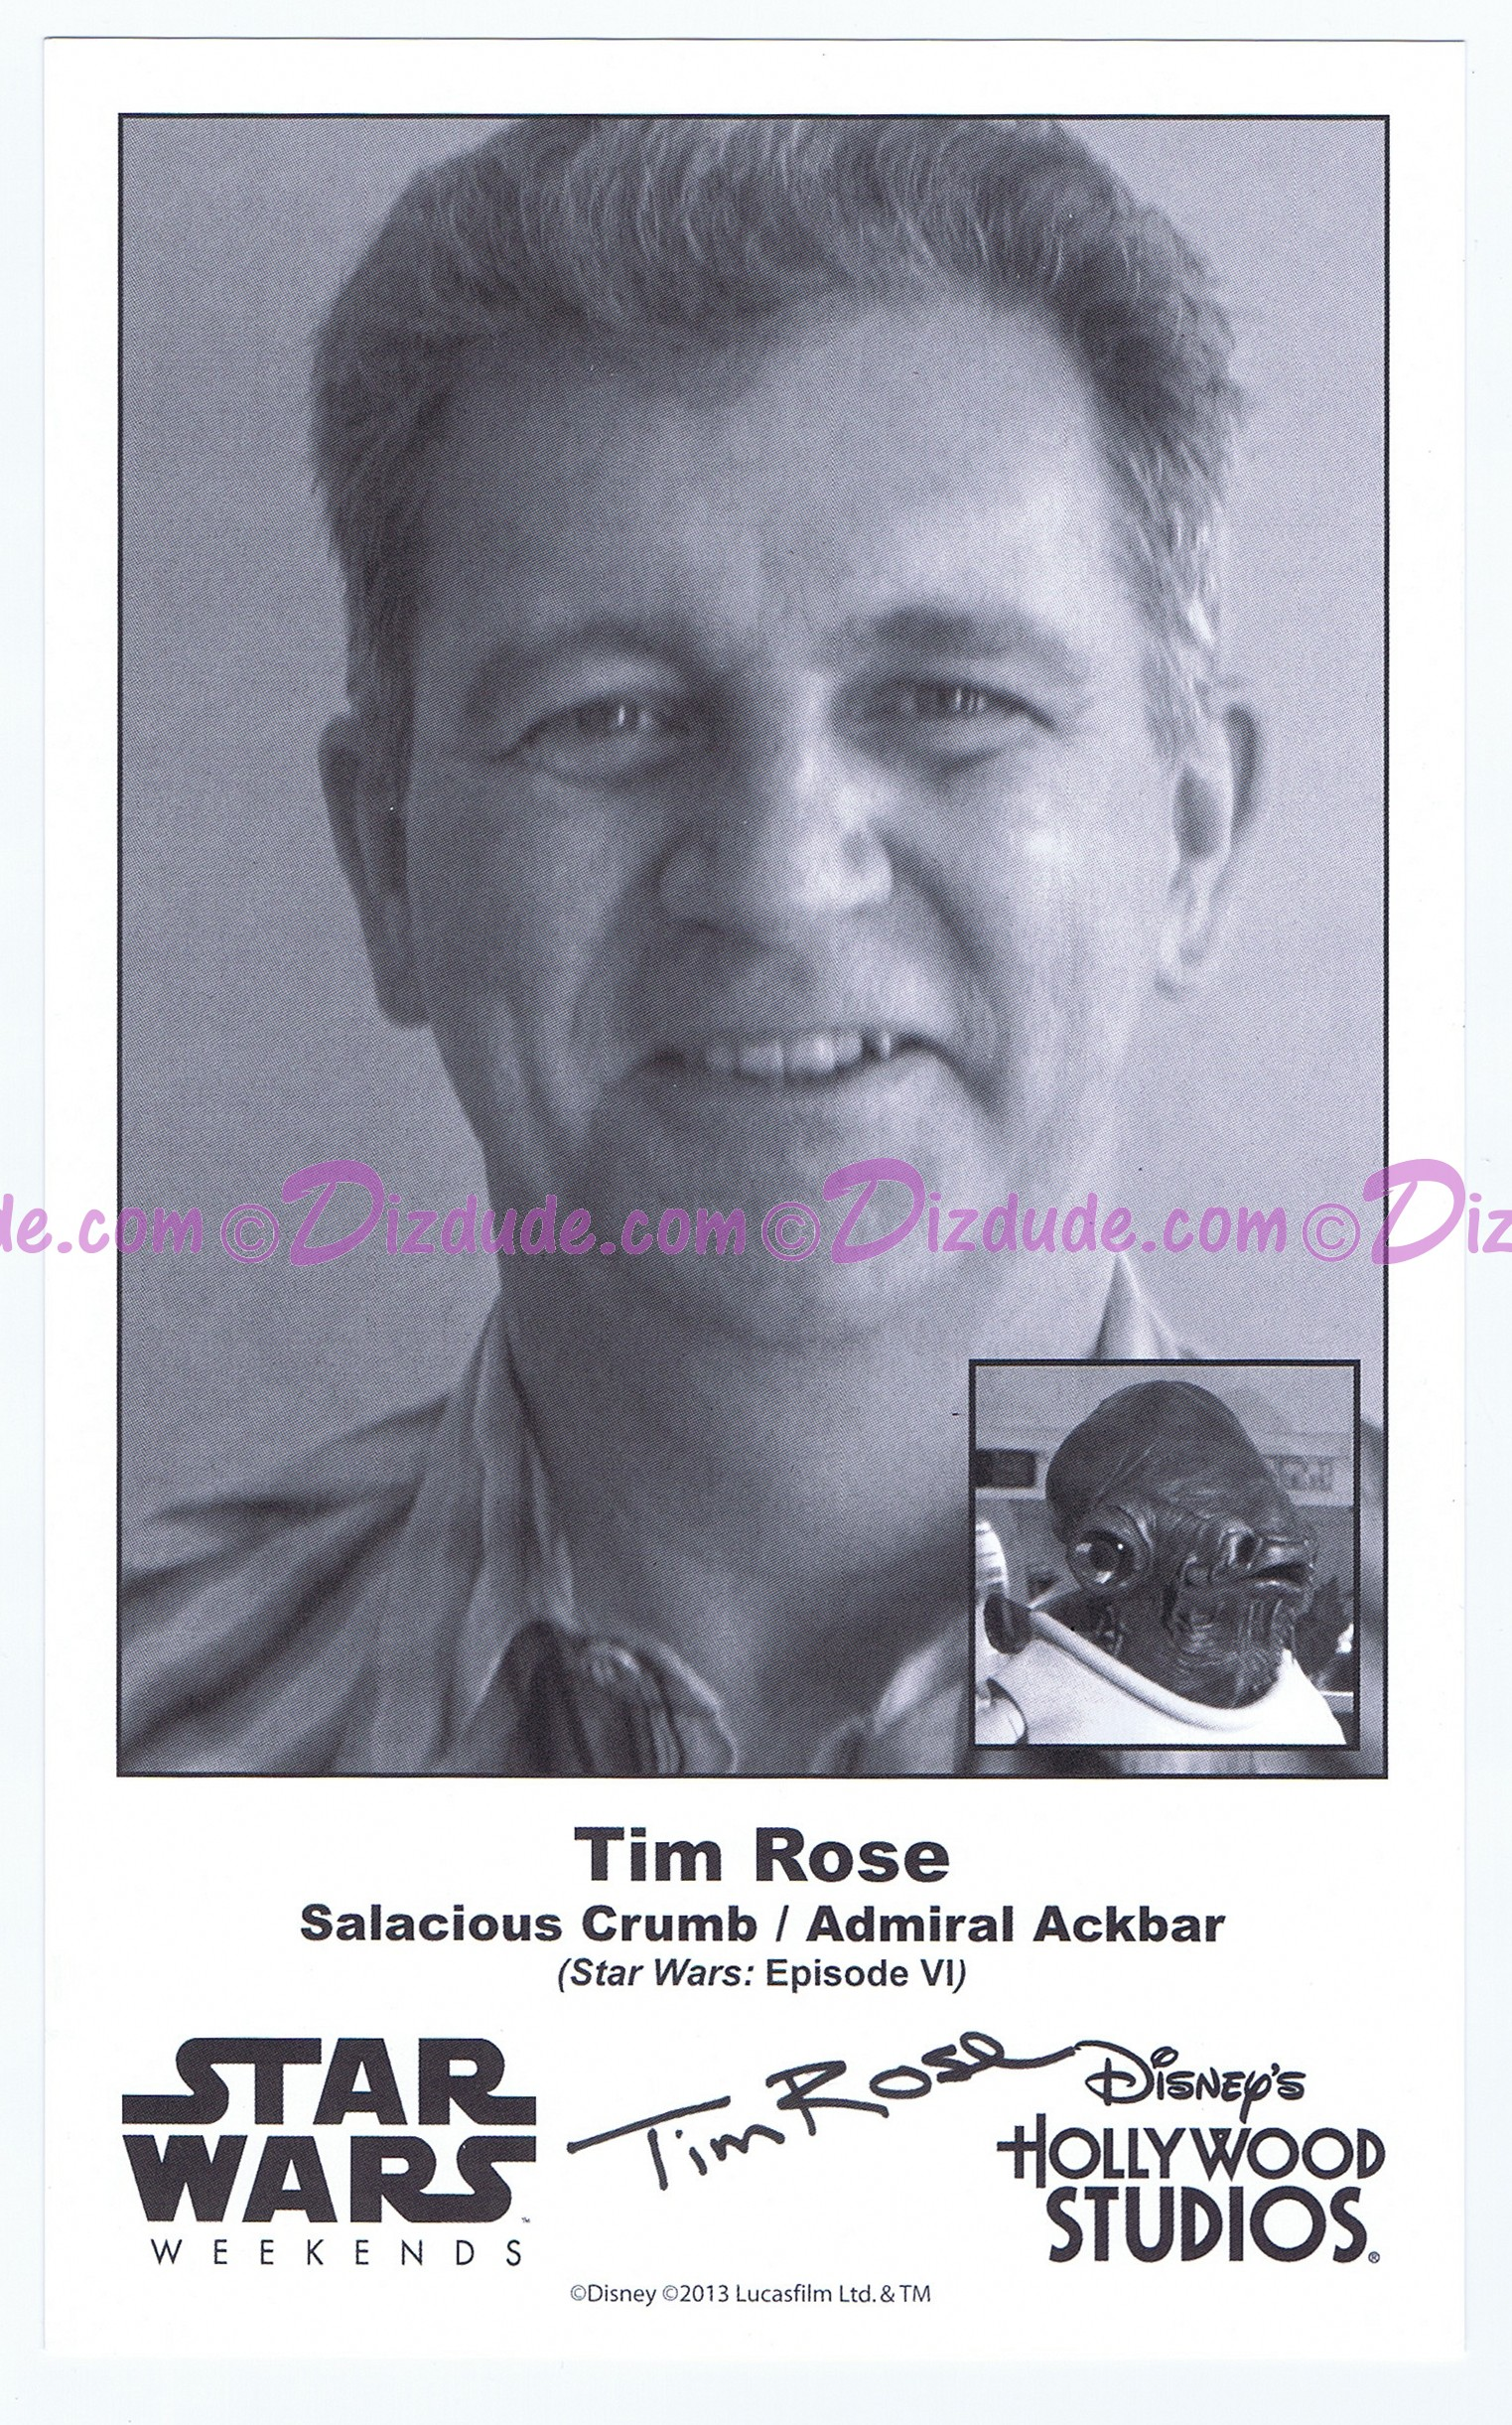 Tim Rose Who Played Admiral Ackbar & Salacious B Crumb Presigned Official Star Wars Weekends 2013 Celebrity Collector Photo © Dizdude.com